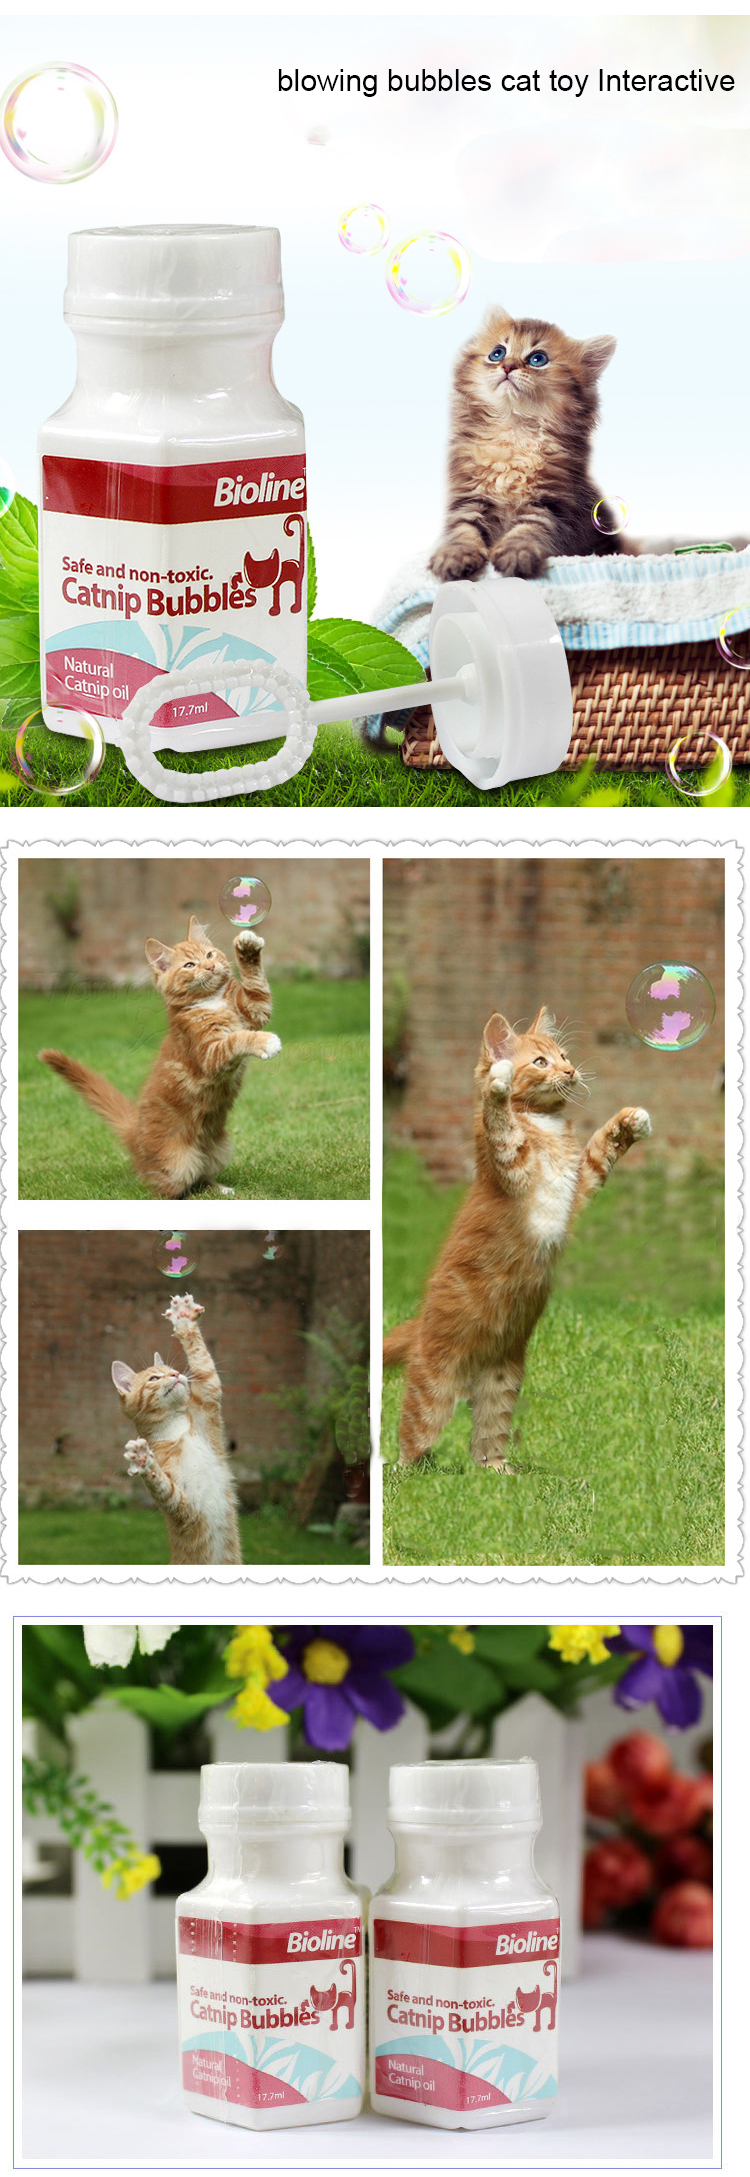 Catnip Blowing Bubbles Sports Gato Brinquedo Interativo